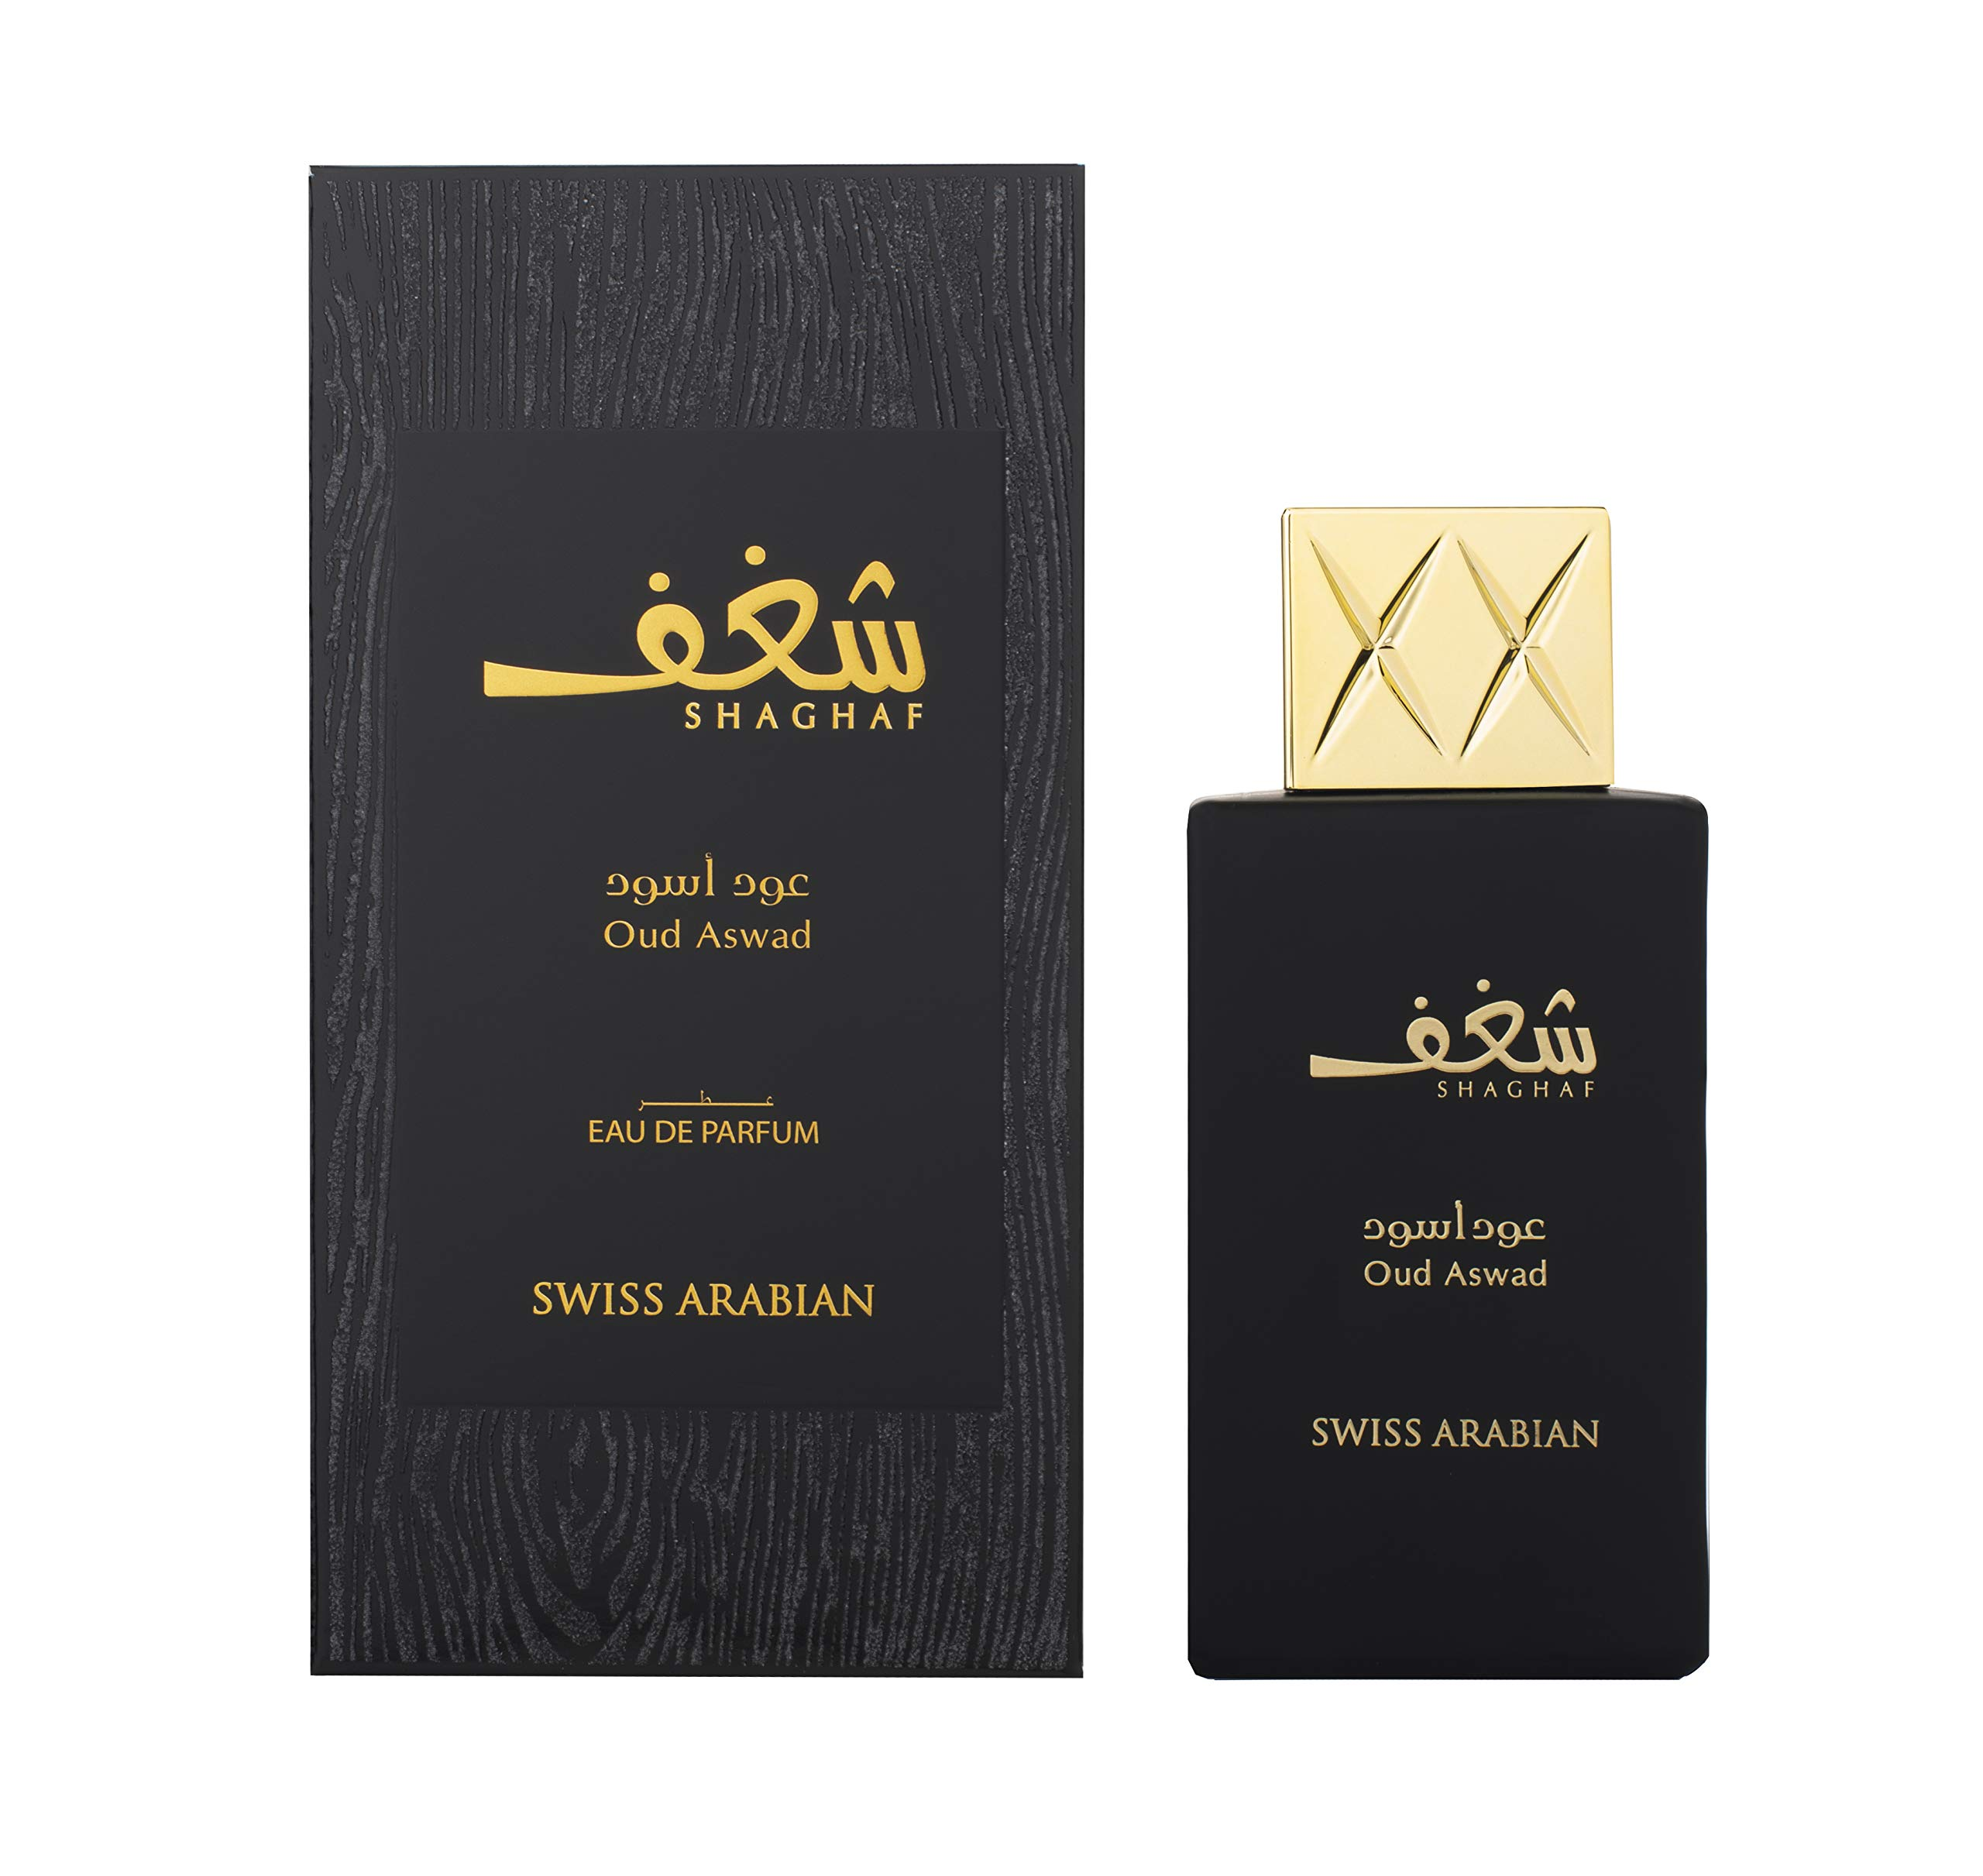 Shaghaf Oud Aswad 75ml for Men and Women, a Sensual and Mouthwatering Unisex Noir Oud Wood Fragrance by perfume artisan Swiss Arabian